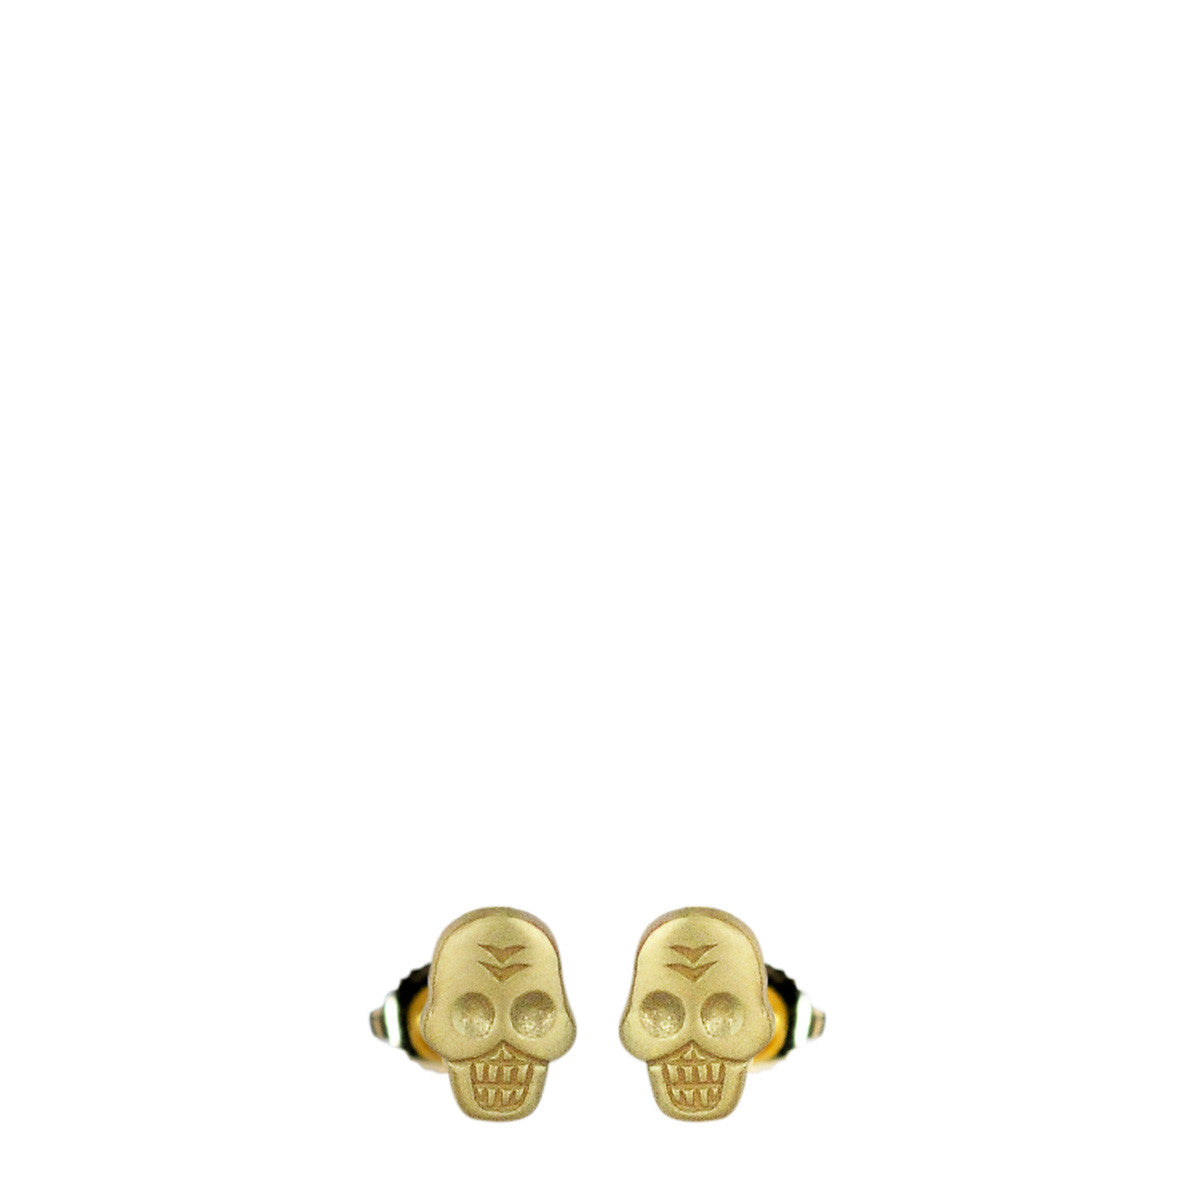 18K Gold Mini Skull Stud Earrings